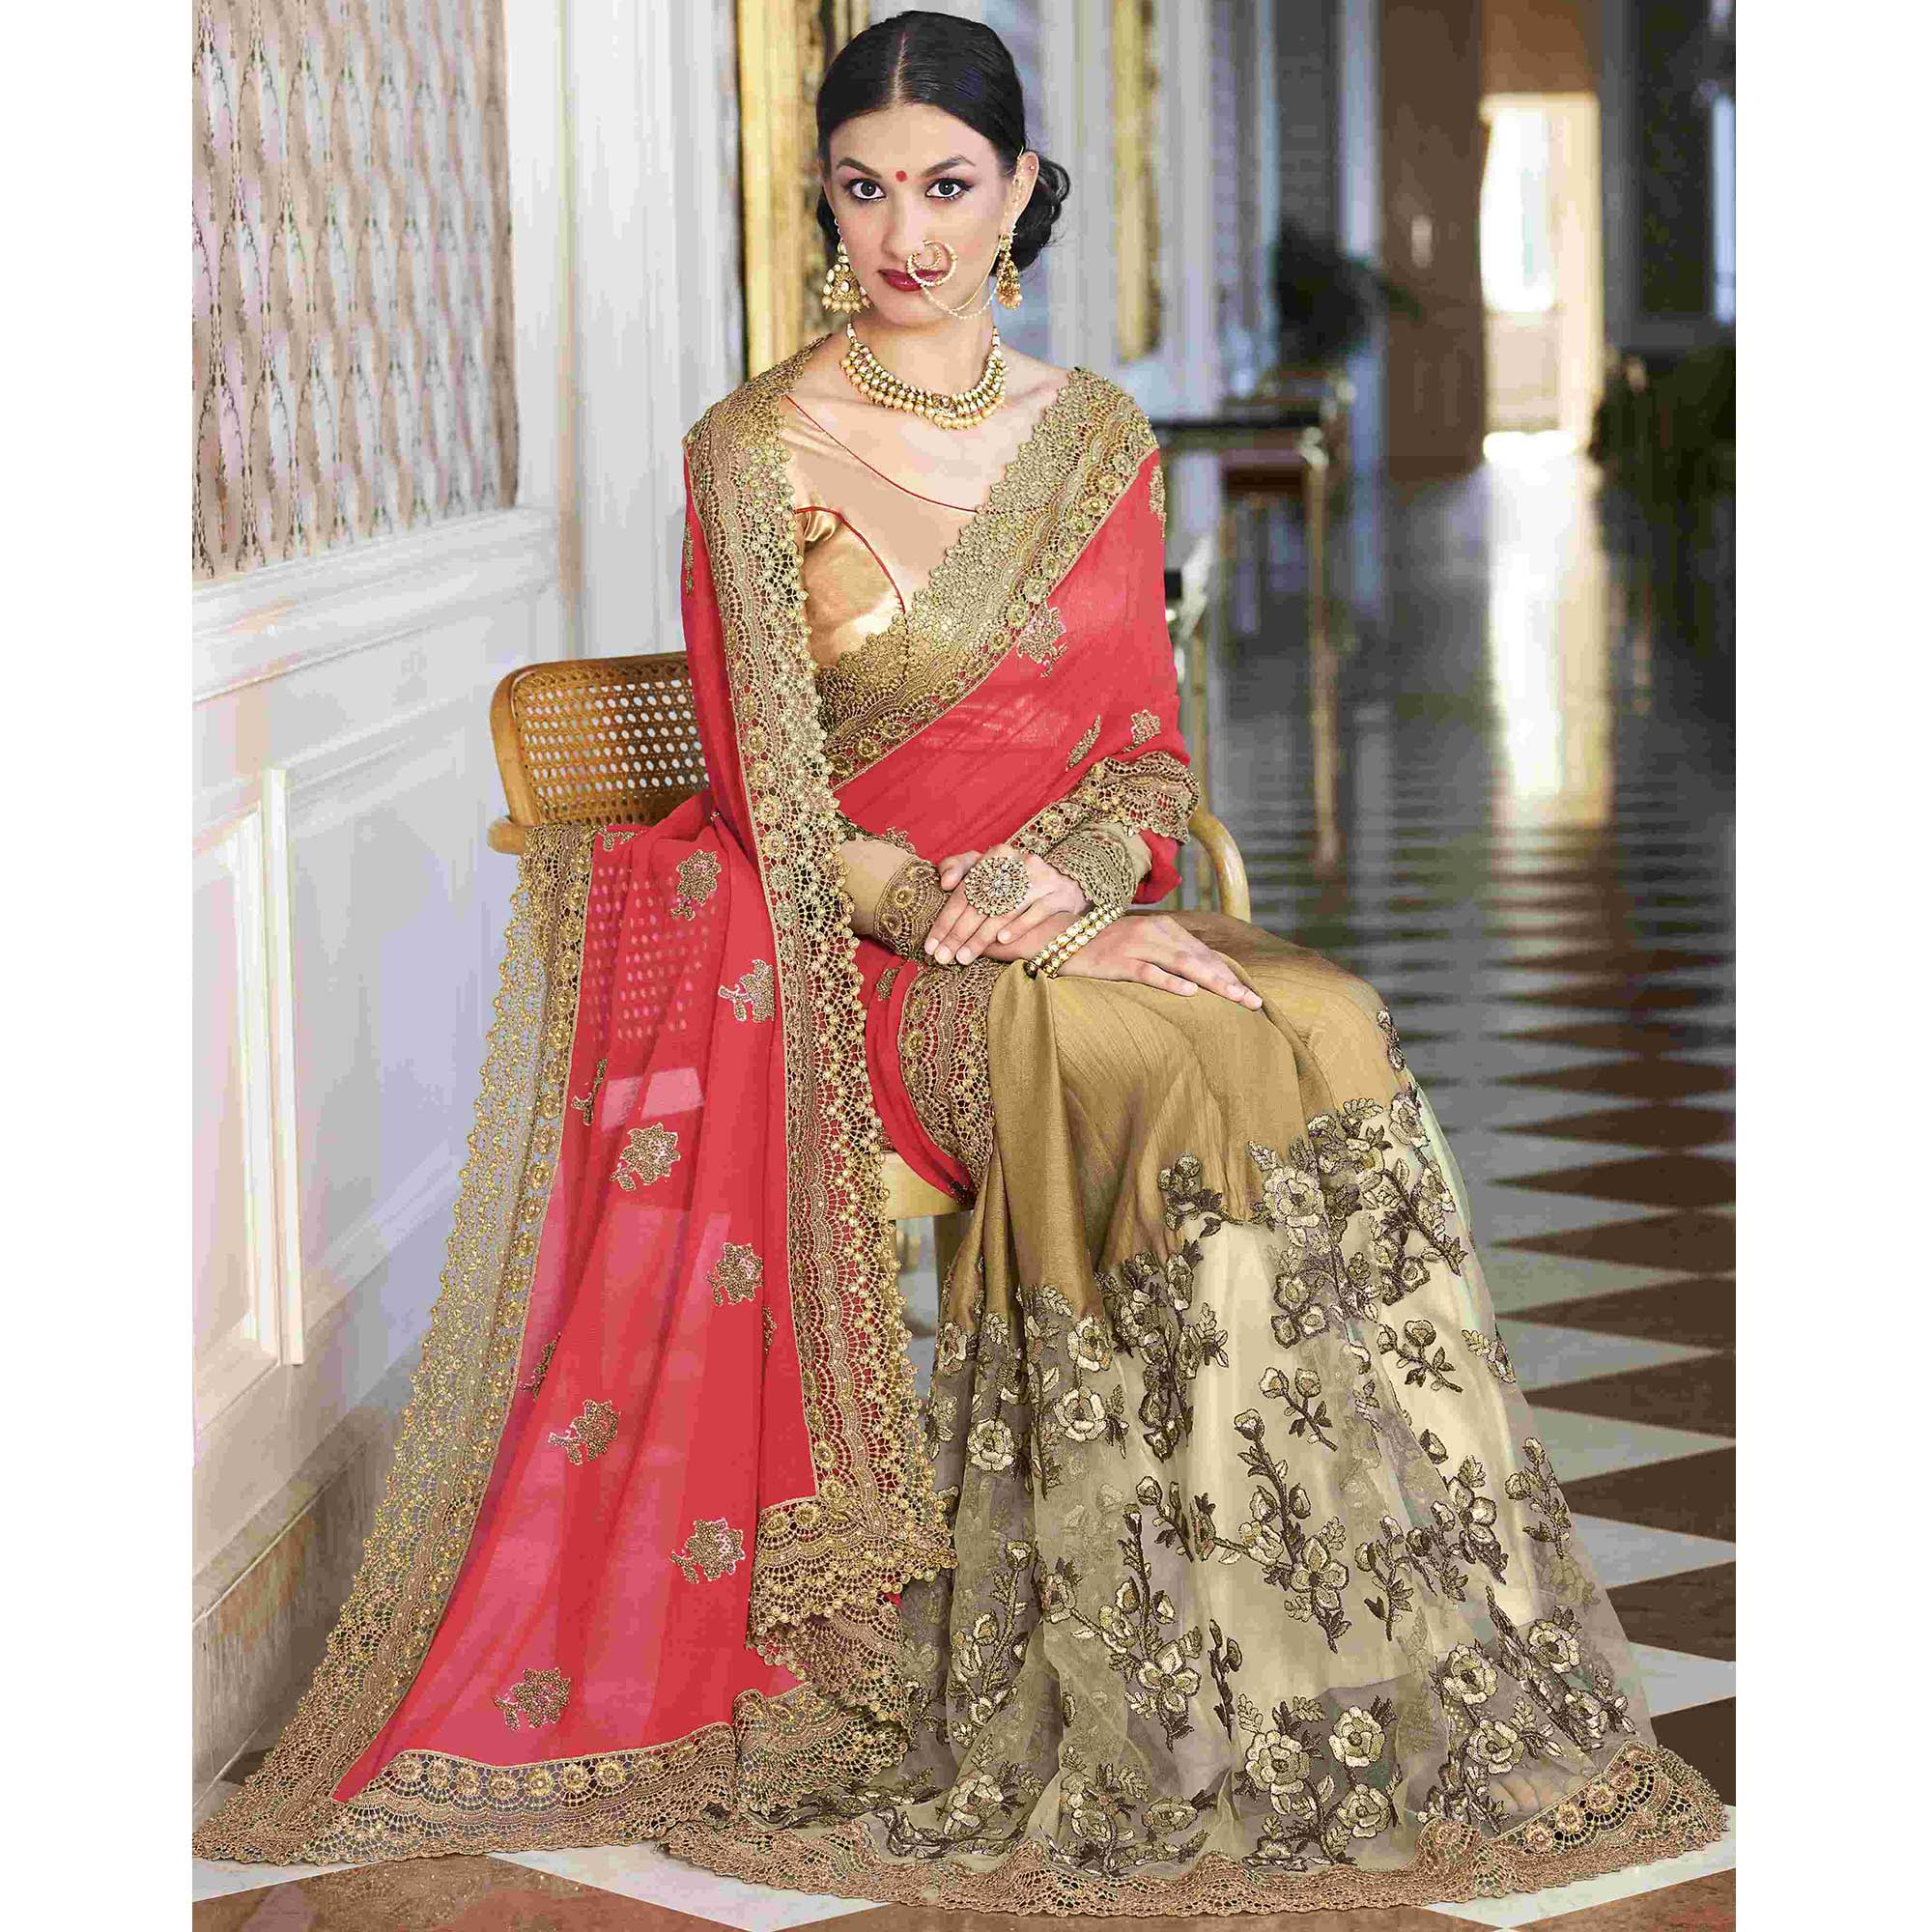 Unique Pink-Chiku Colored Partywear Embroidered Faux Georgette Half-Half Saree